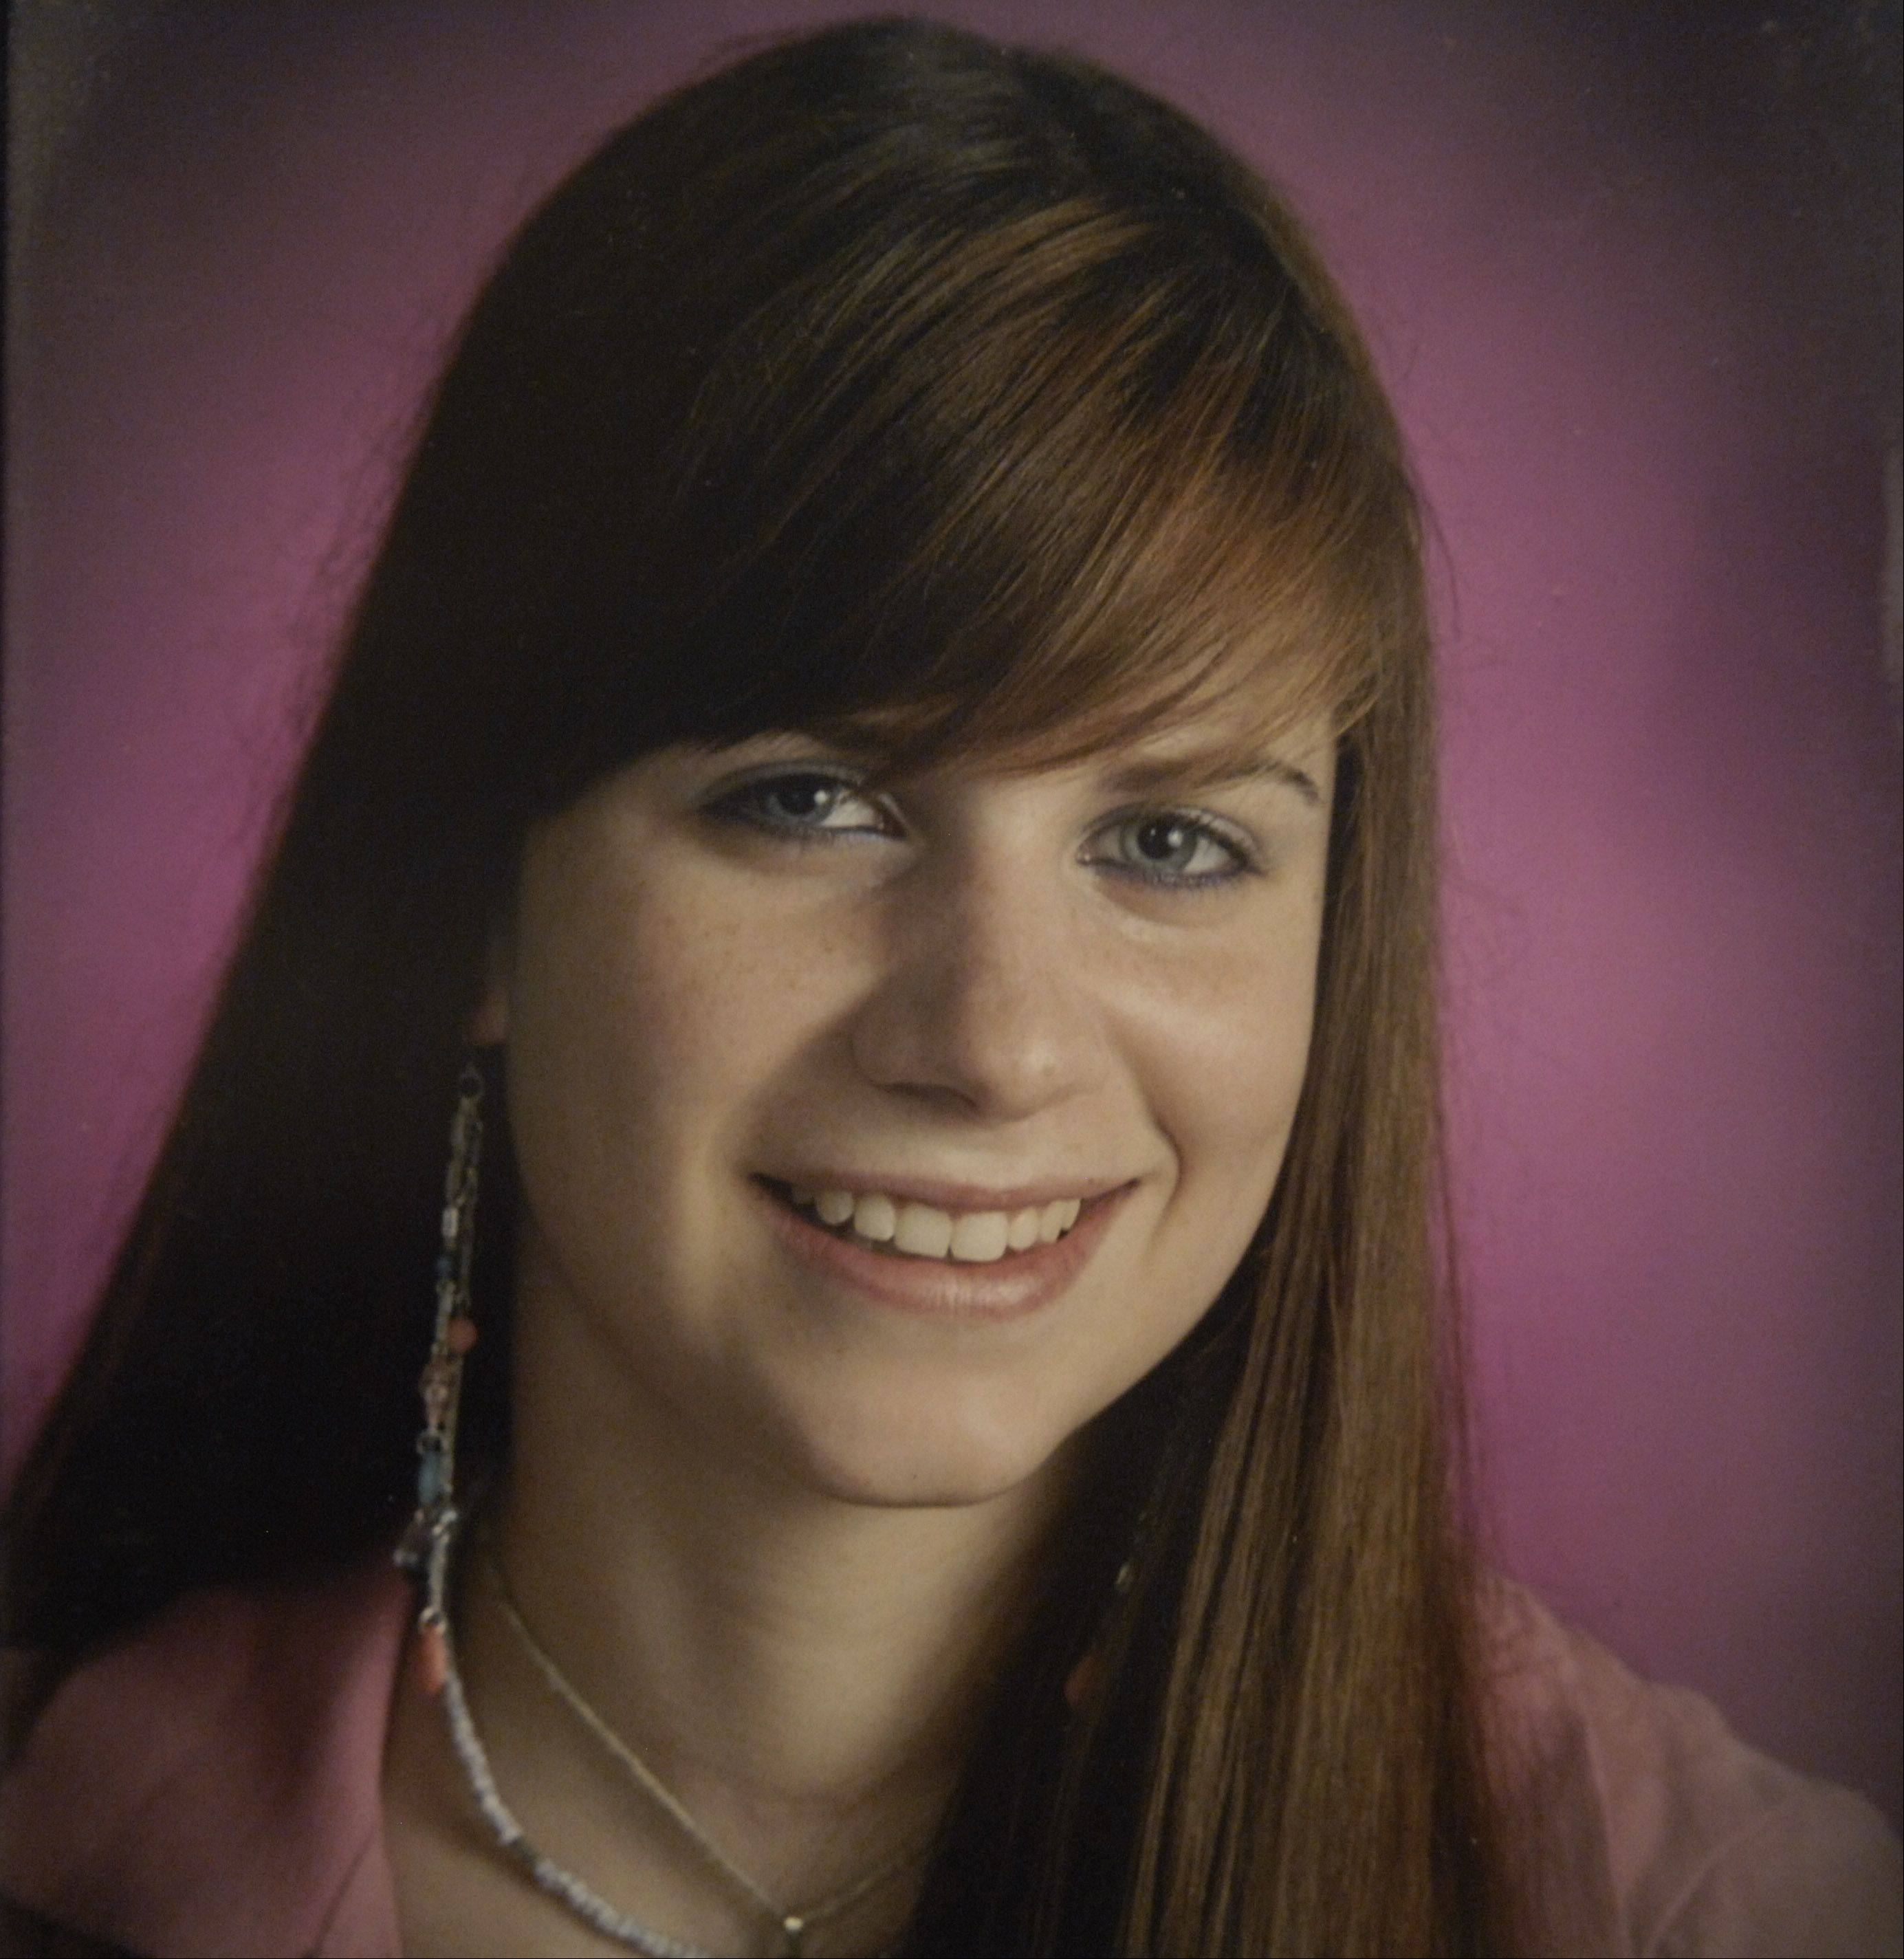 Emily Jackson, 18, of Arlington Heights, died in 2006 after taking a single OxyContin pill that was in a relative's medicine cabinet.